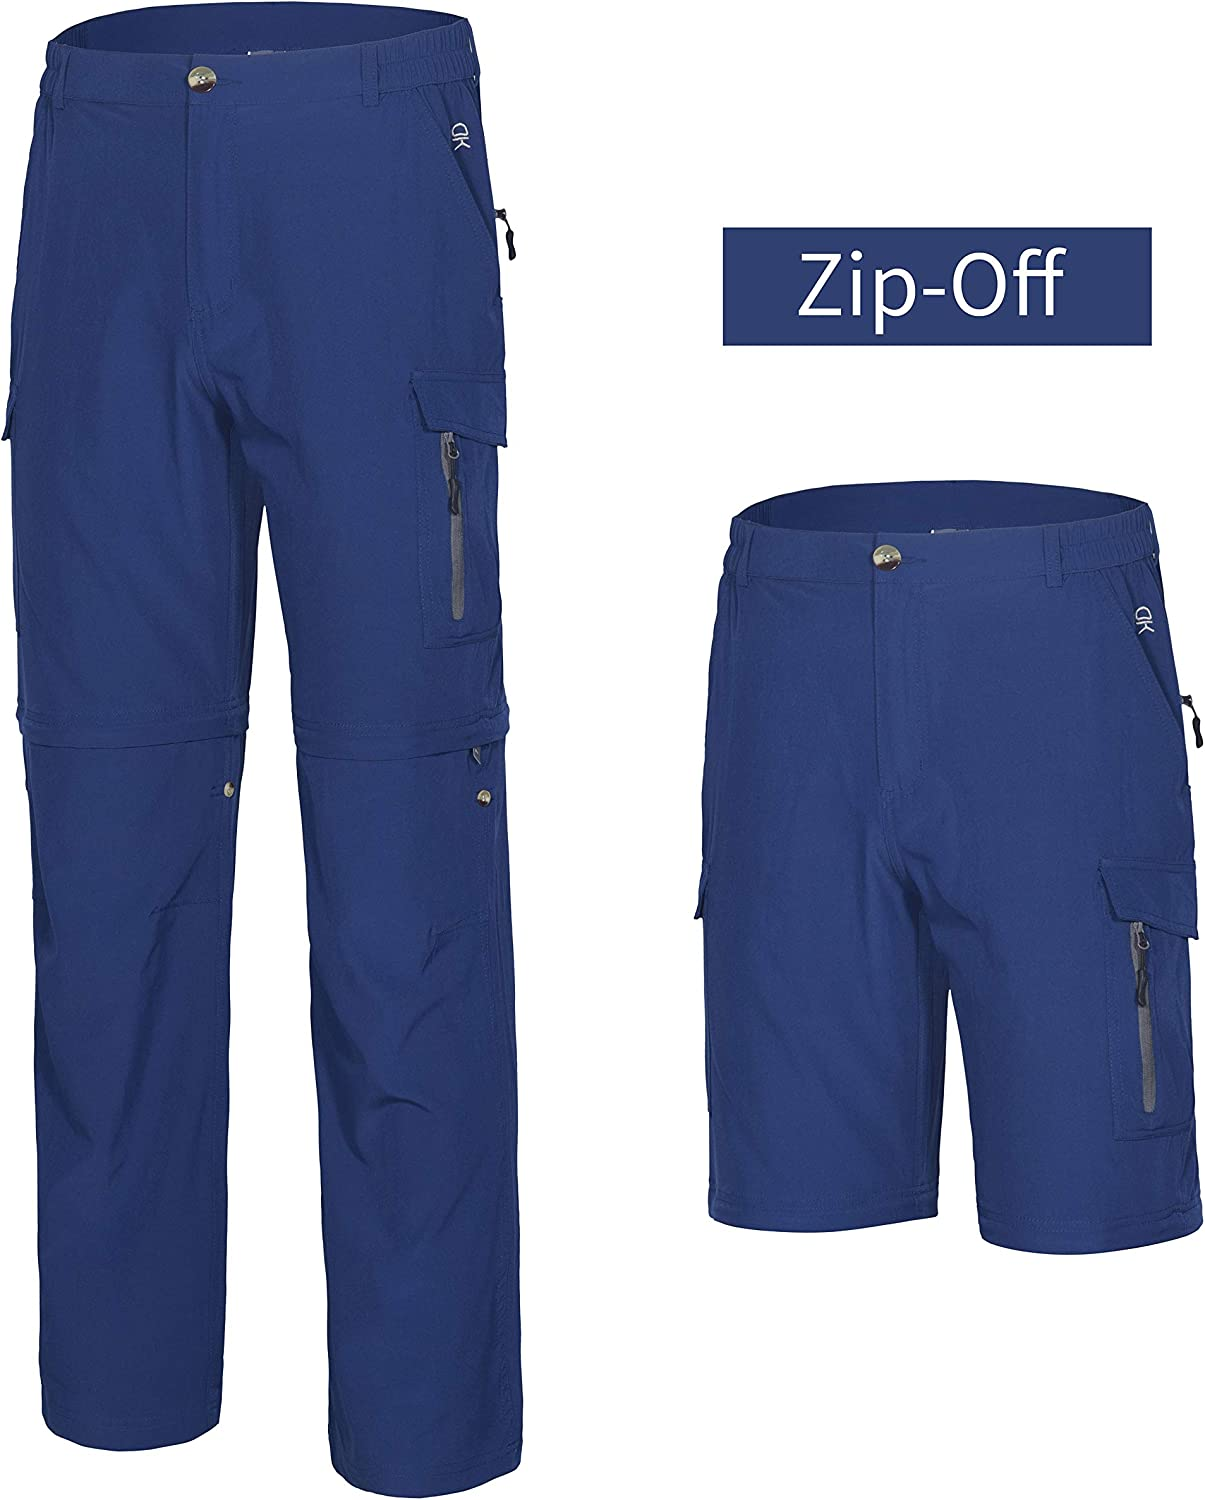 Little Donkey Andy Mens Hiking Convertible Pants Zip-Off Stretch Quick Dry Shorts for Camping,Fishing